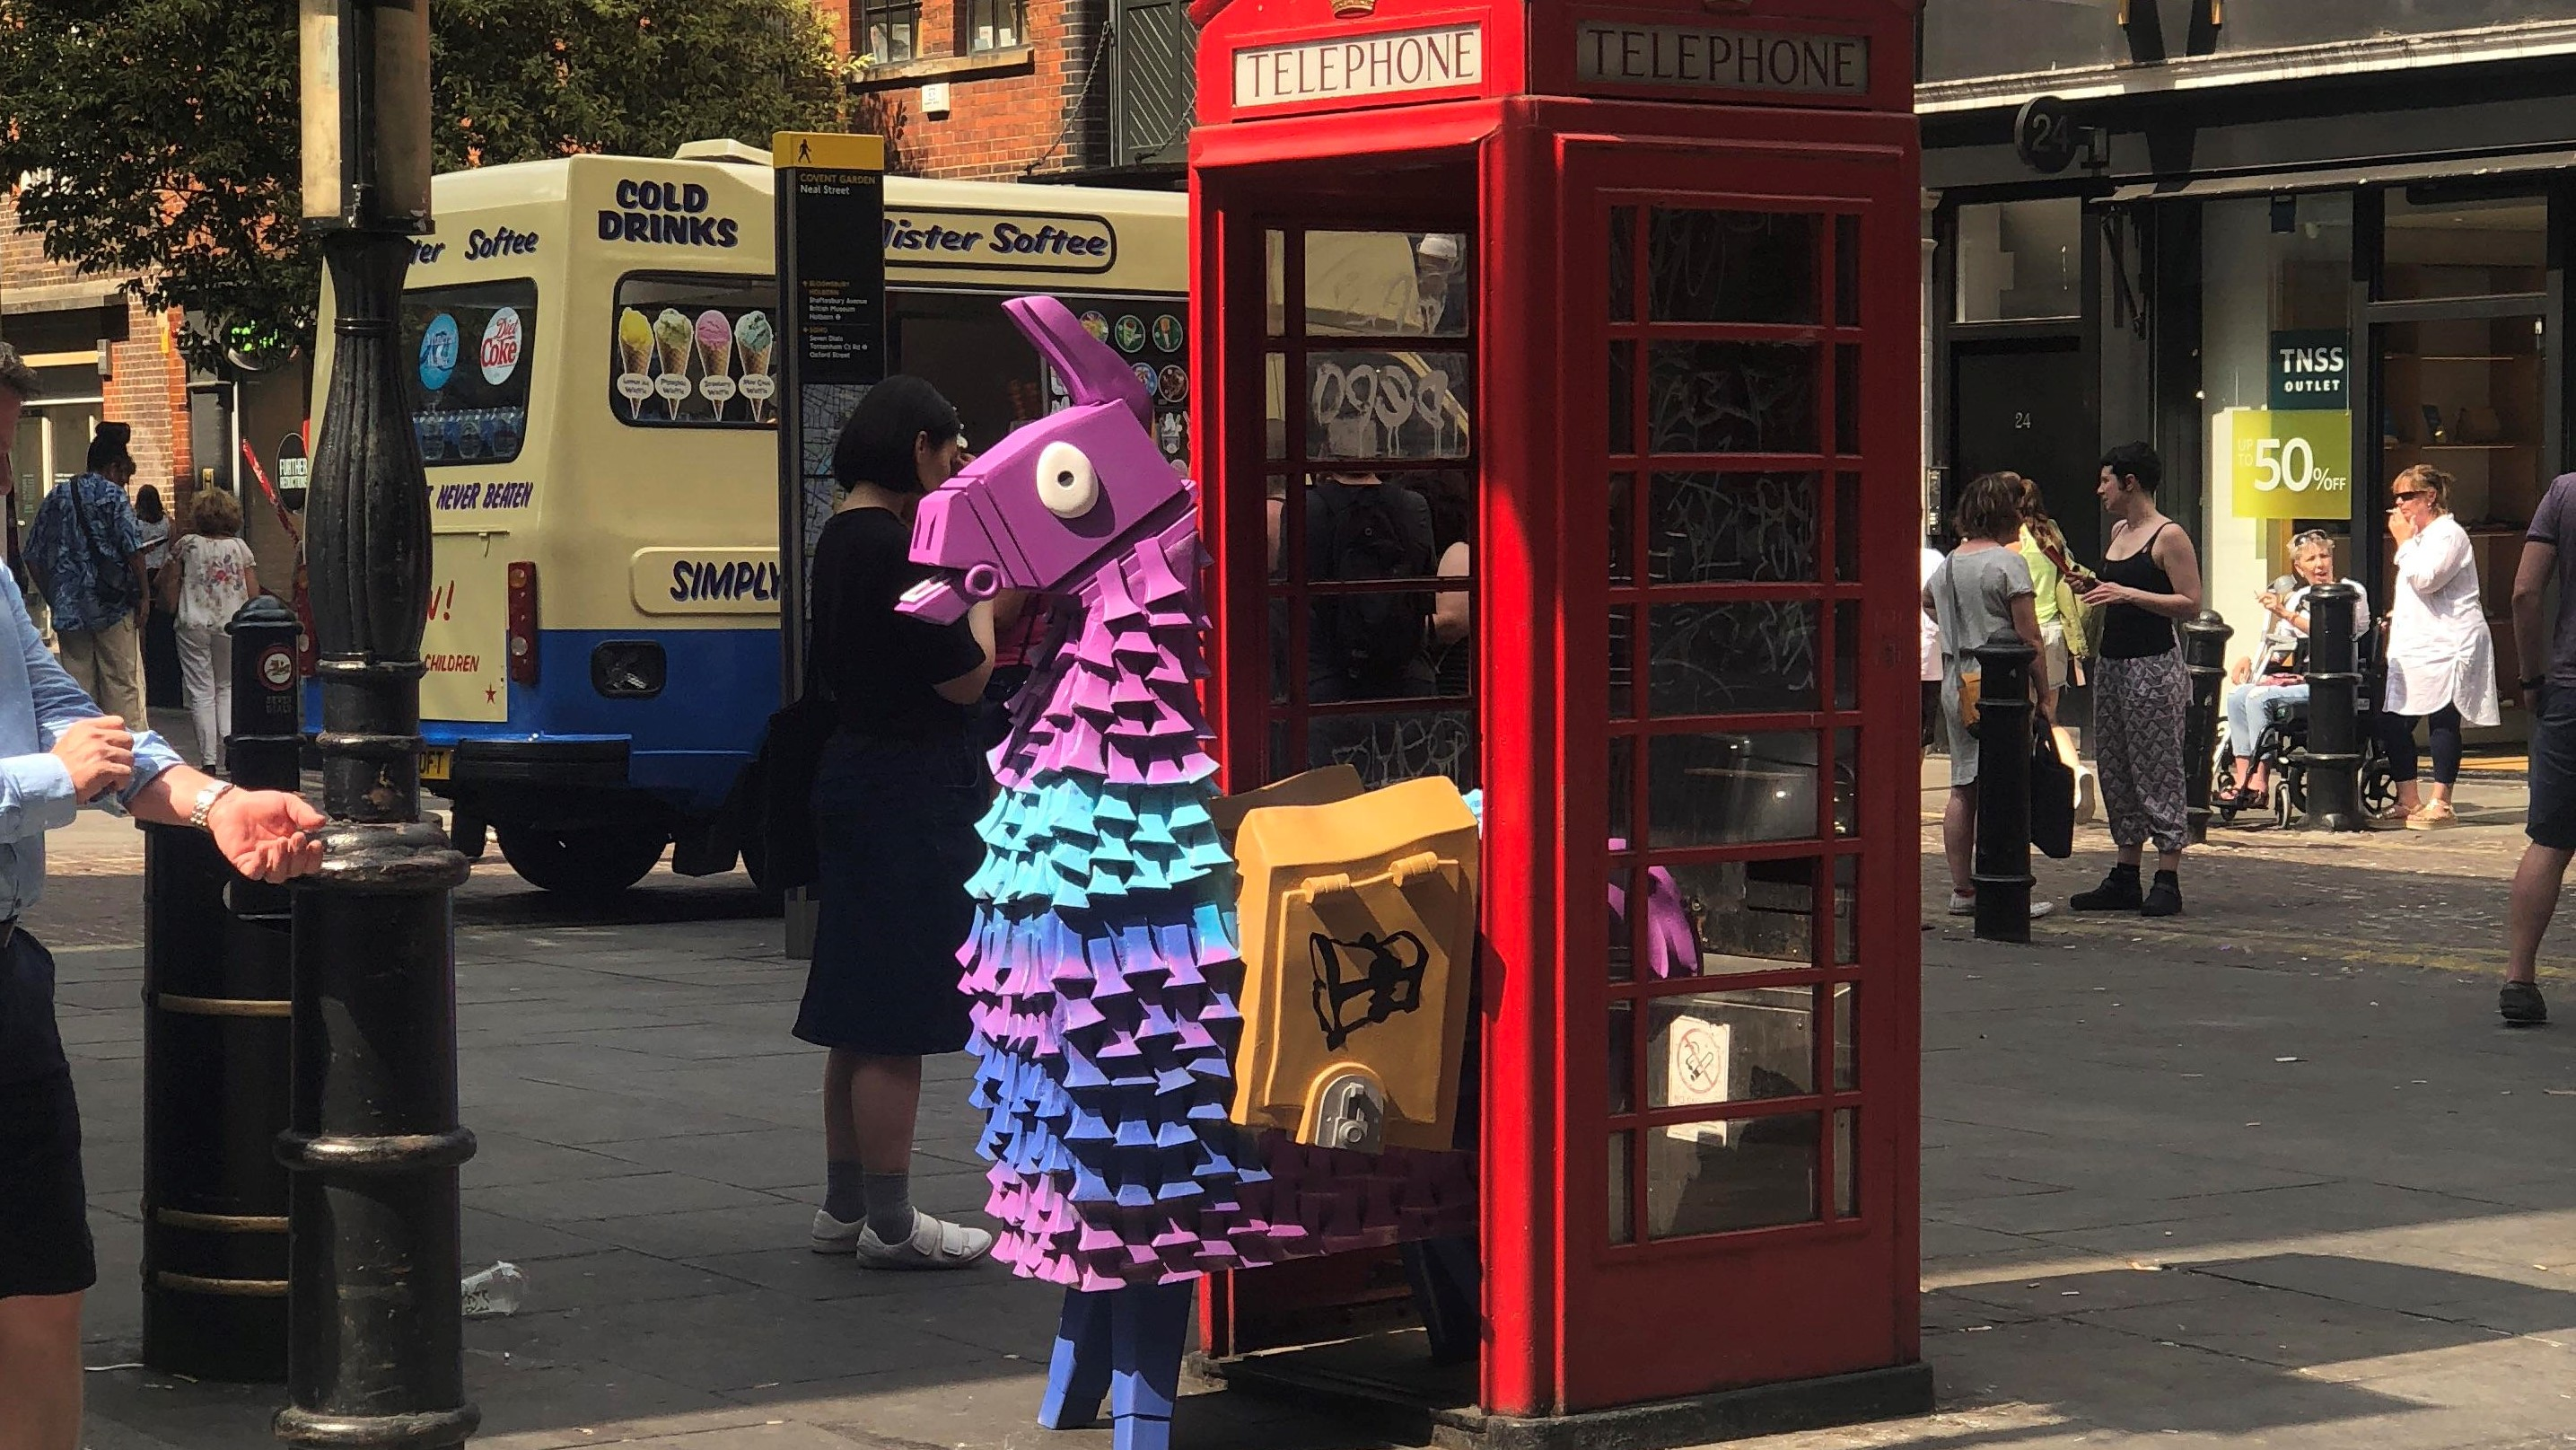 lama fornite londres